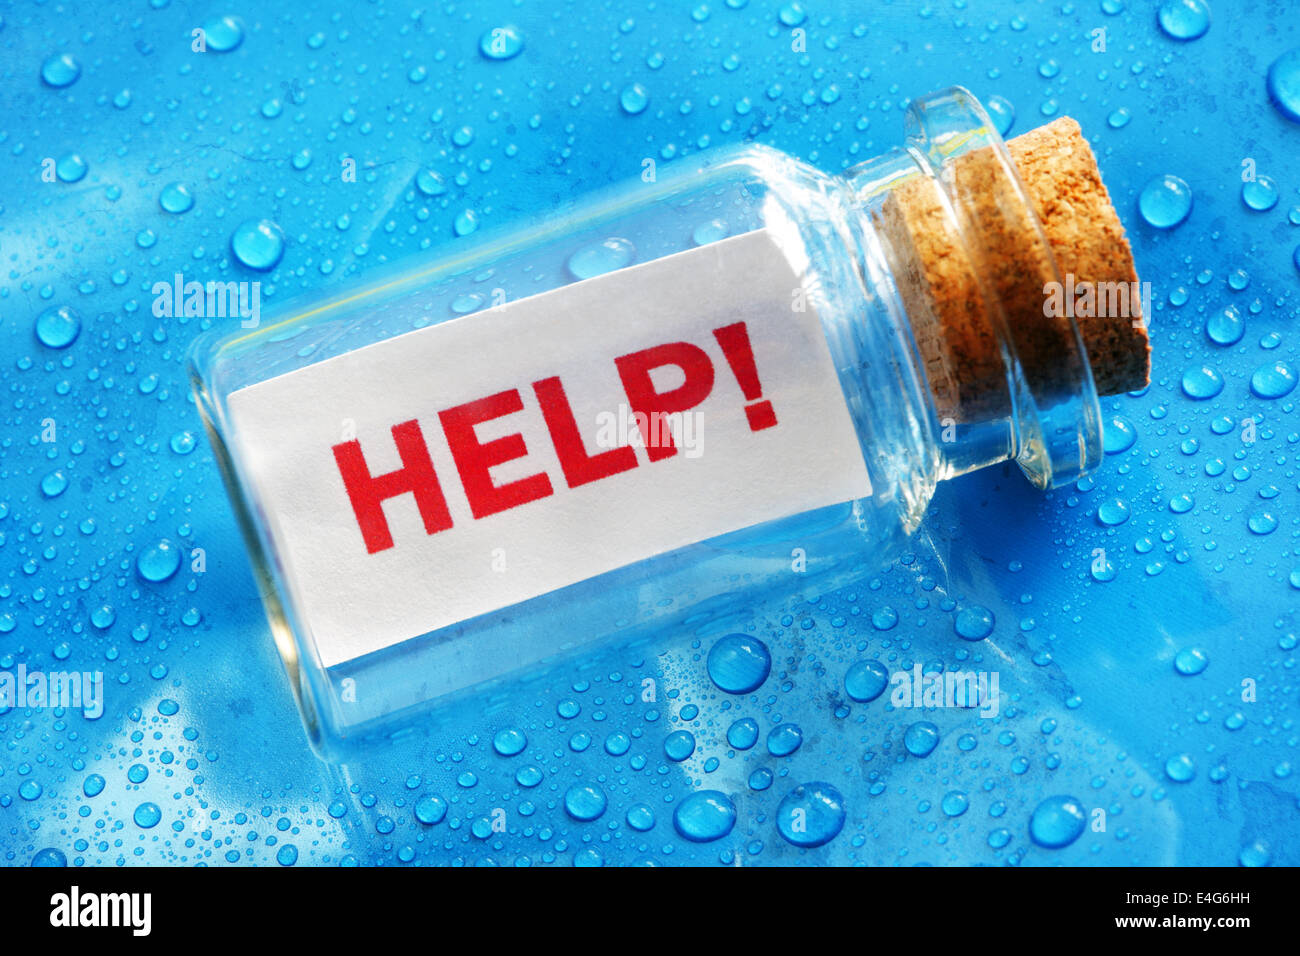 Help message in a bottle - Stock Image